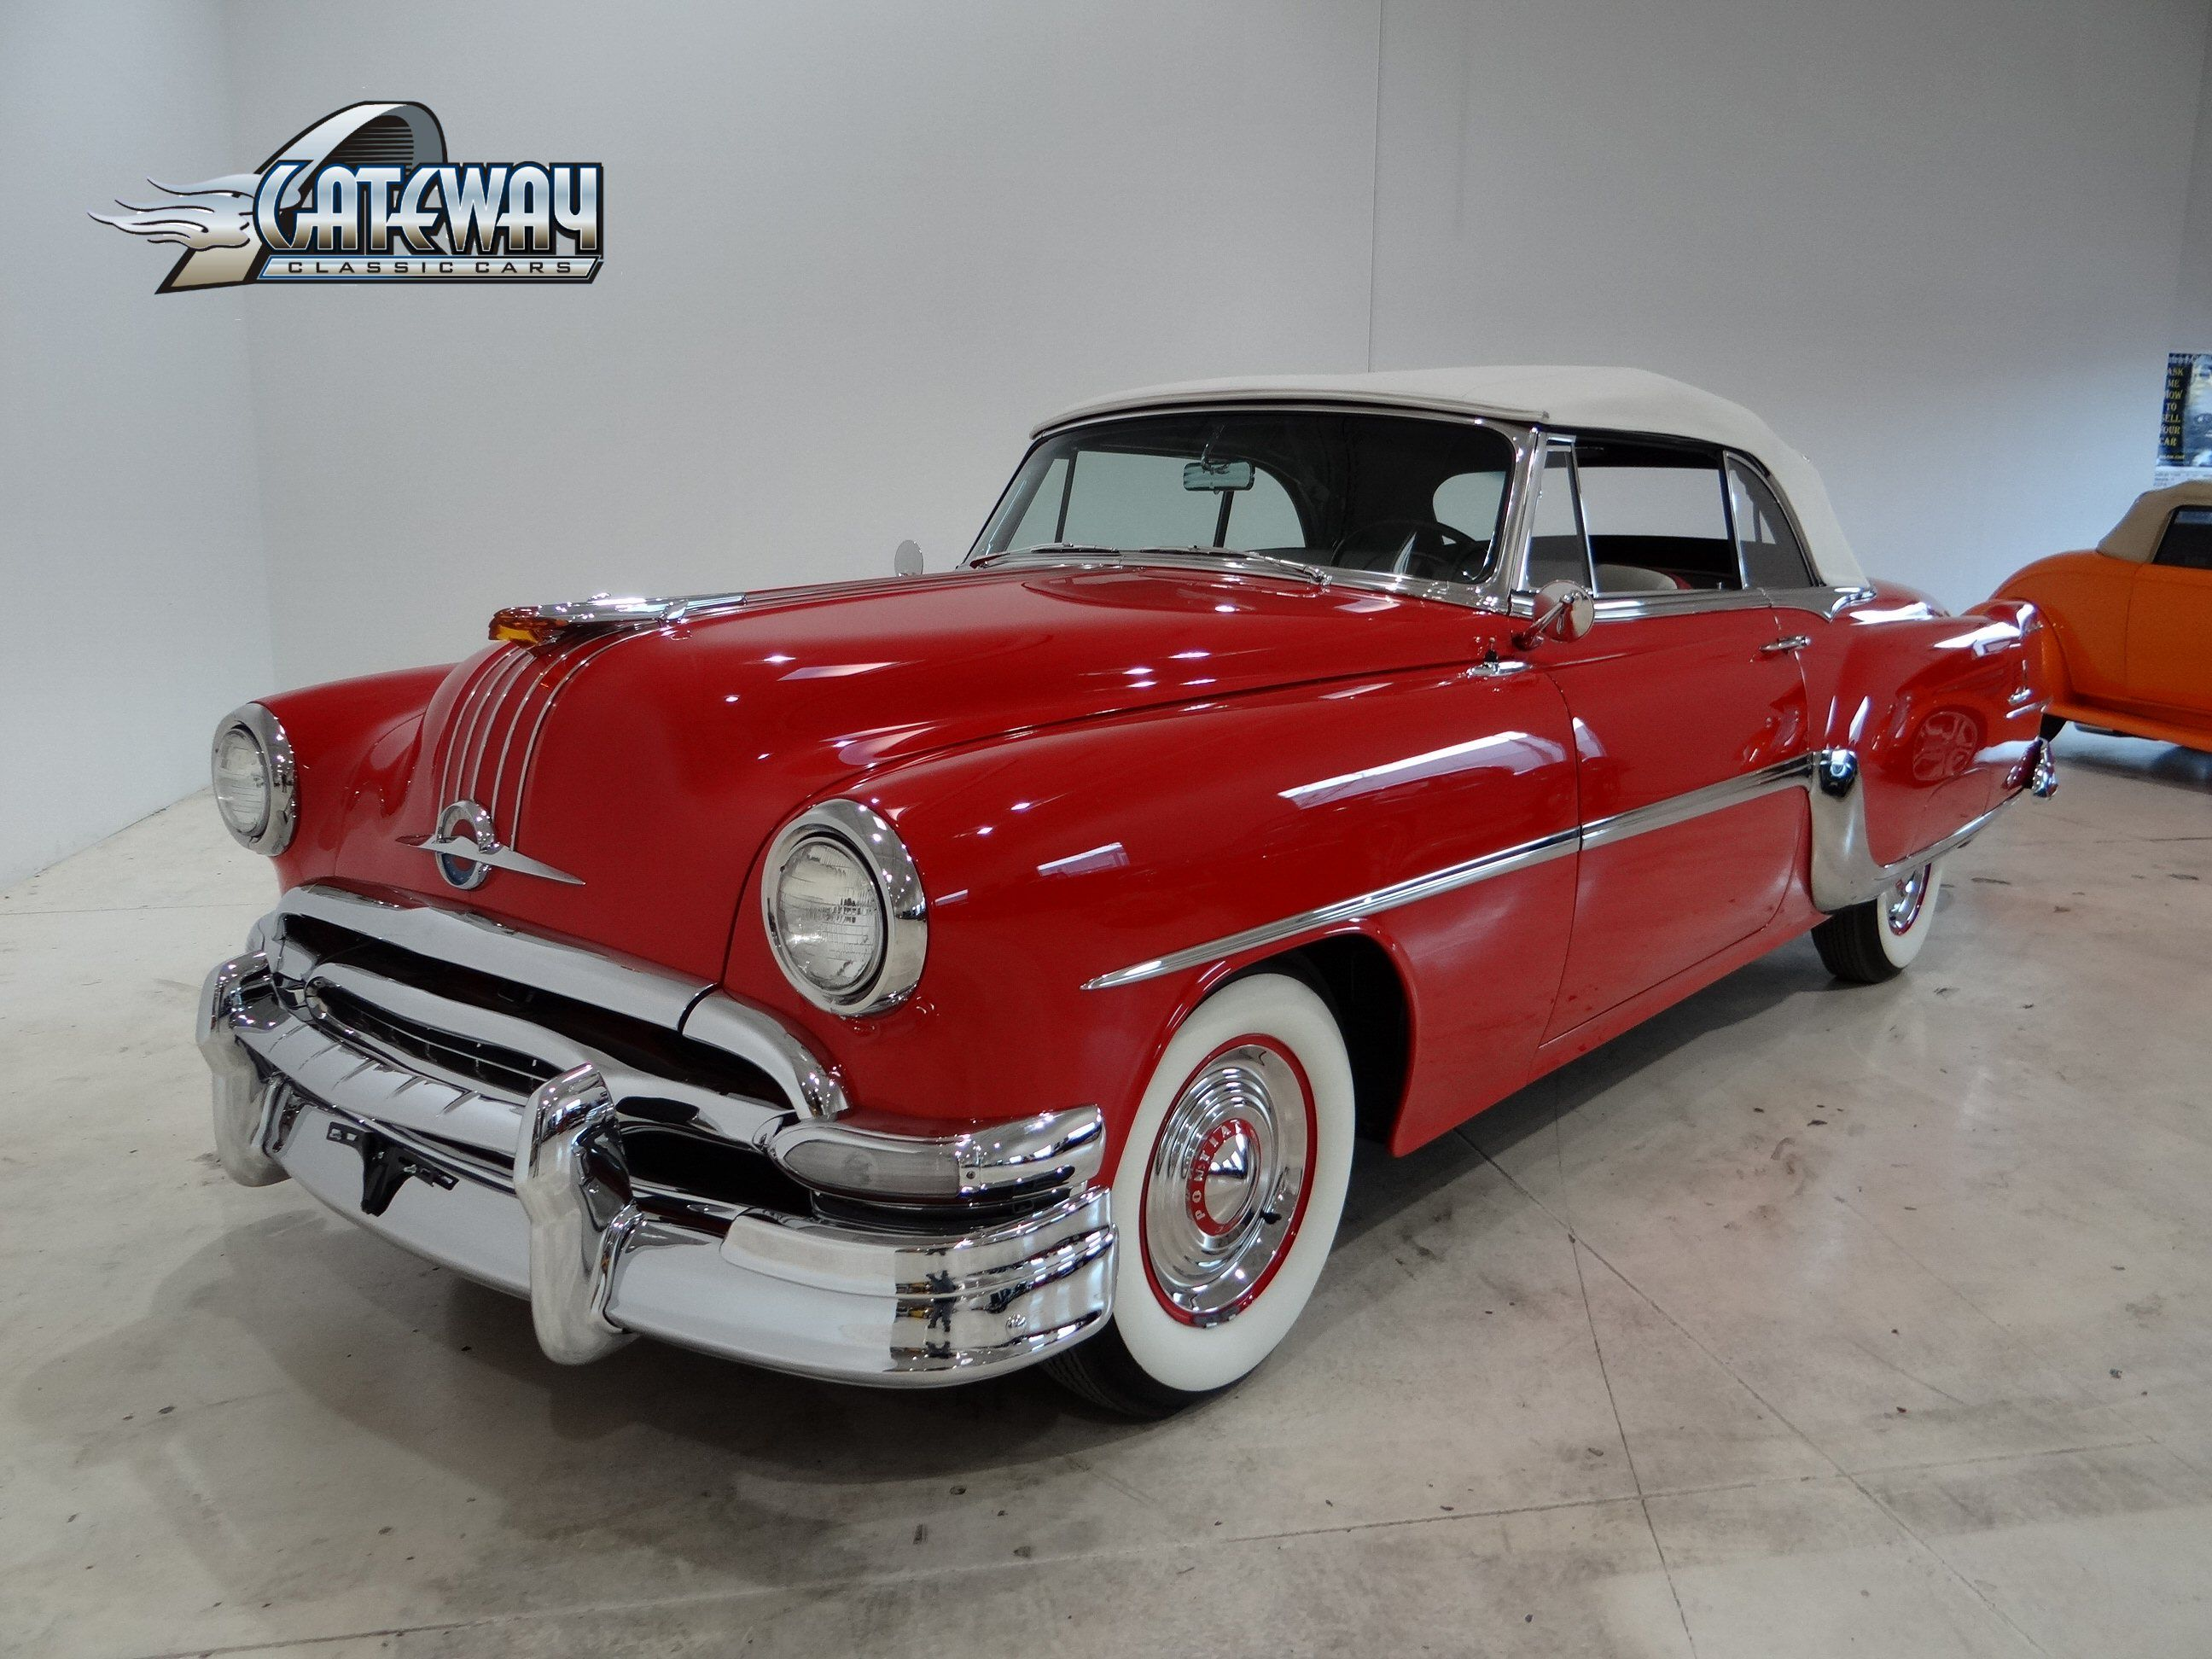 1954 pontiac star chief convertible for sale gateway classic cars